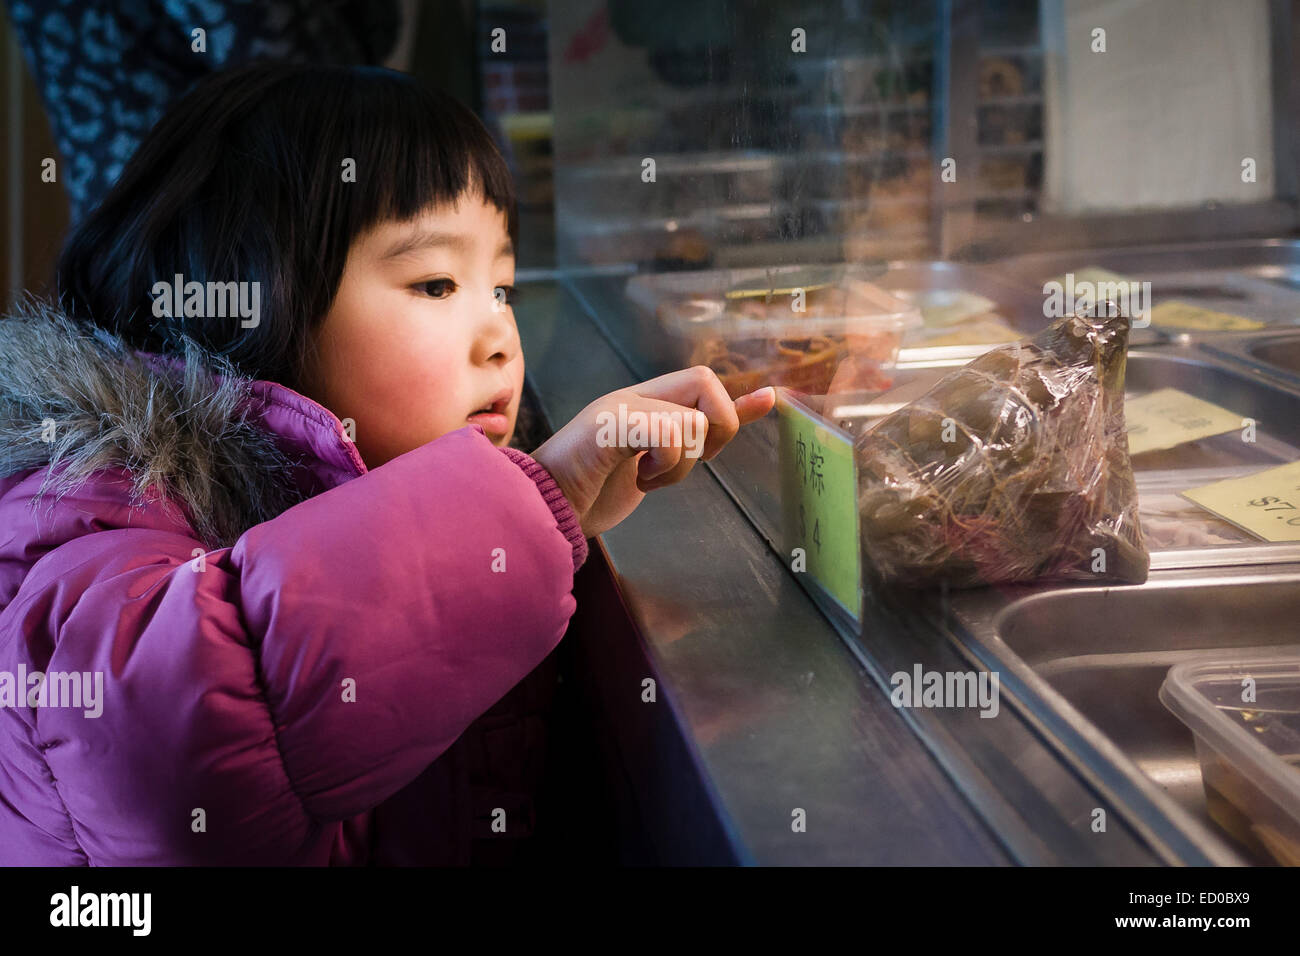 Girl wearing pink jacket looking at display - Stock Image